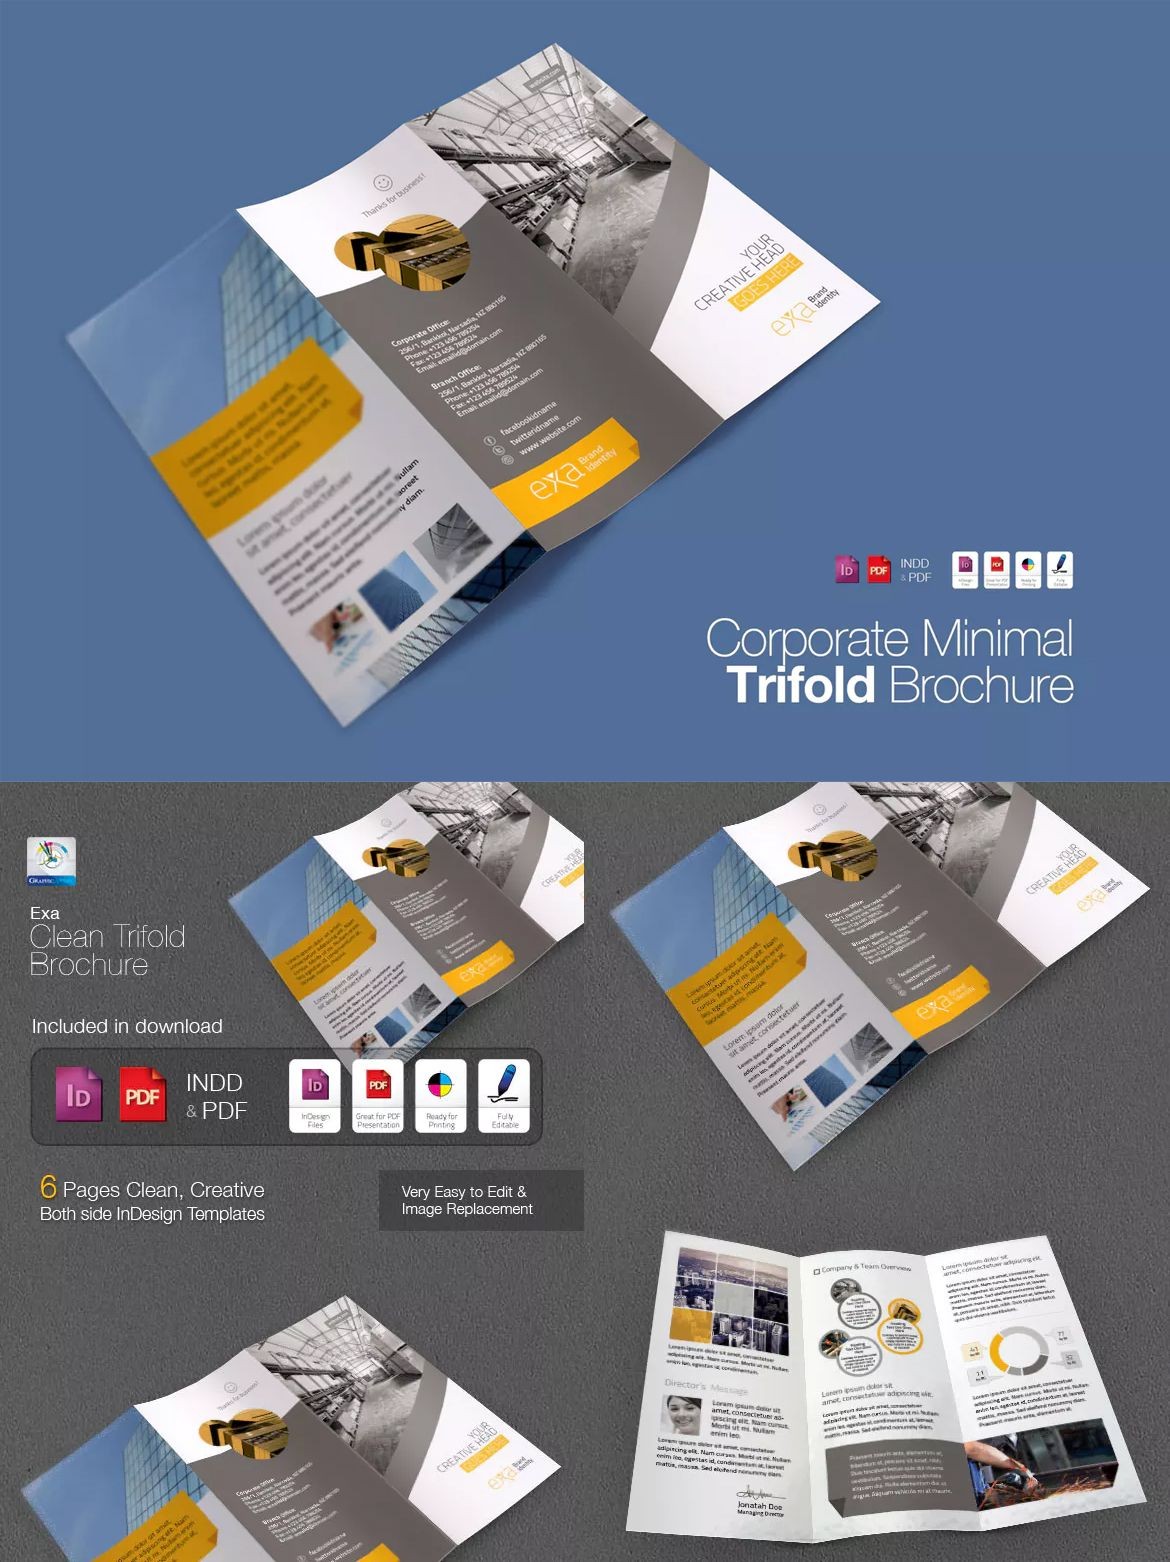 Exa | Clean & Minimal Trifold Brochure Template InDesign INDD ...